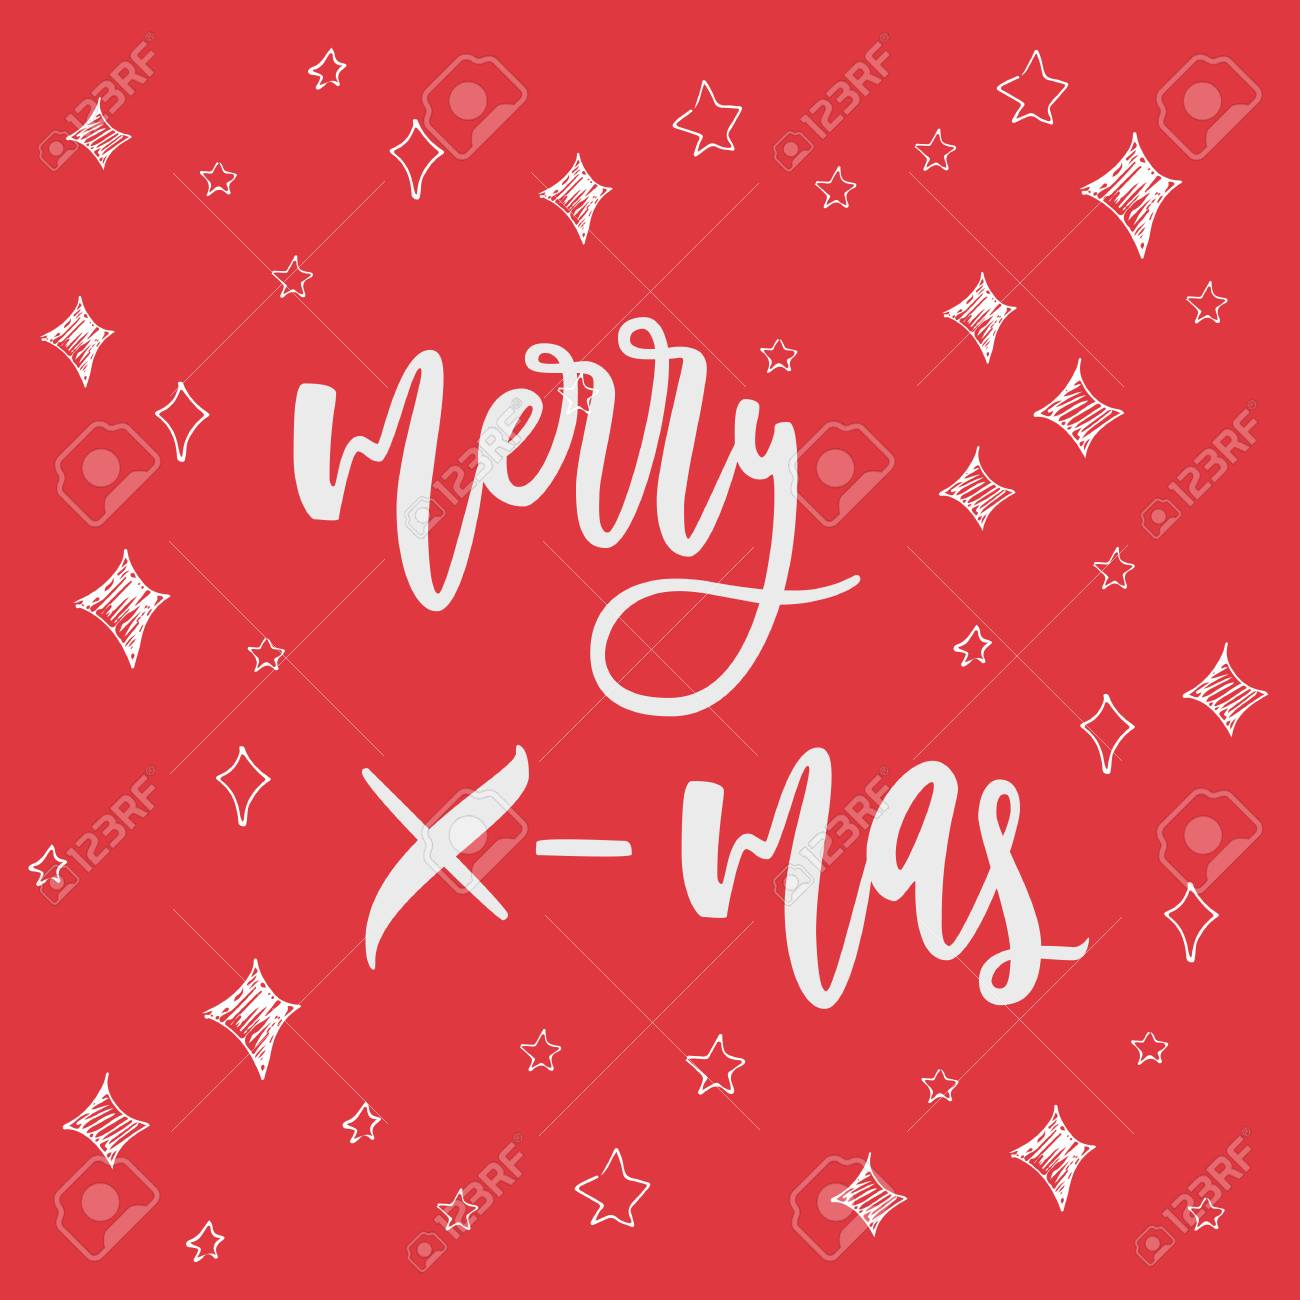 merry x-mas greeting card on christmas background. hand drawn